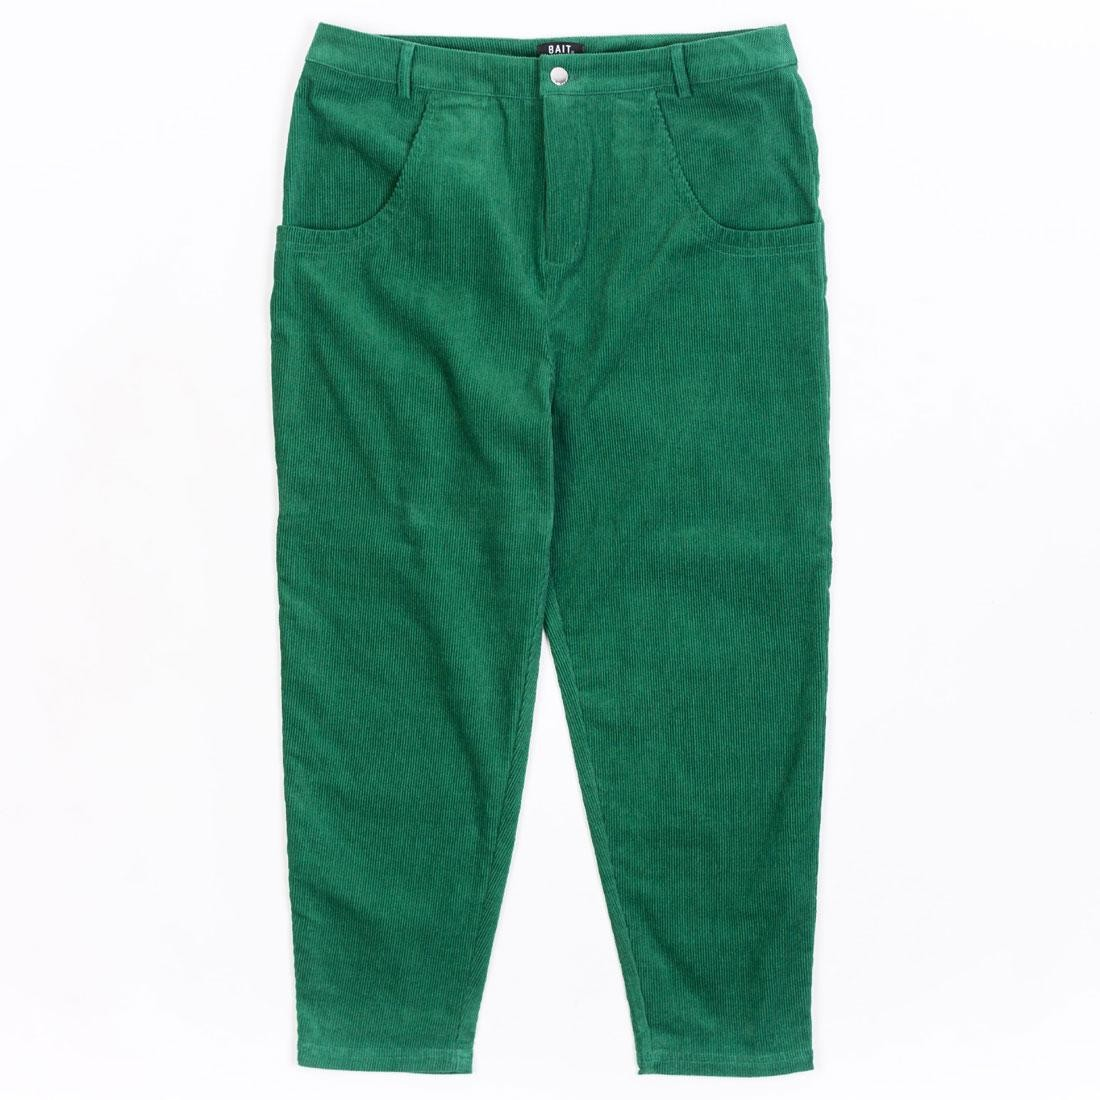 BAIT Unisex Corduroy Tailored Pants (green / kelly)